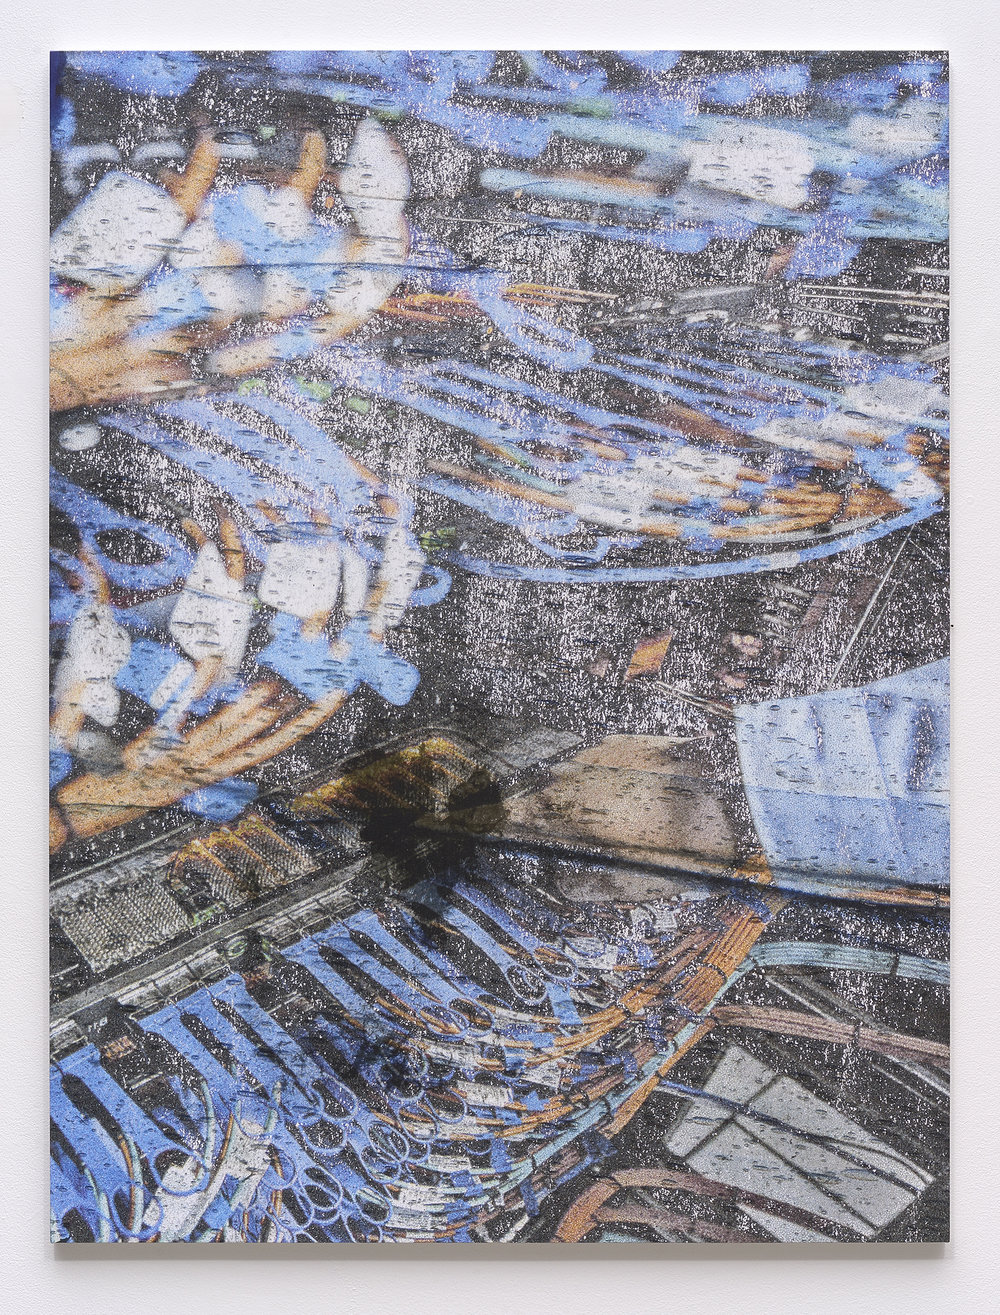 Hugh Scott-Douglas,  Untitled , 2018, UV cured inkjet print, digitally printed polyester resin on dibond, 53 x 40 inches